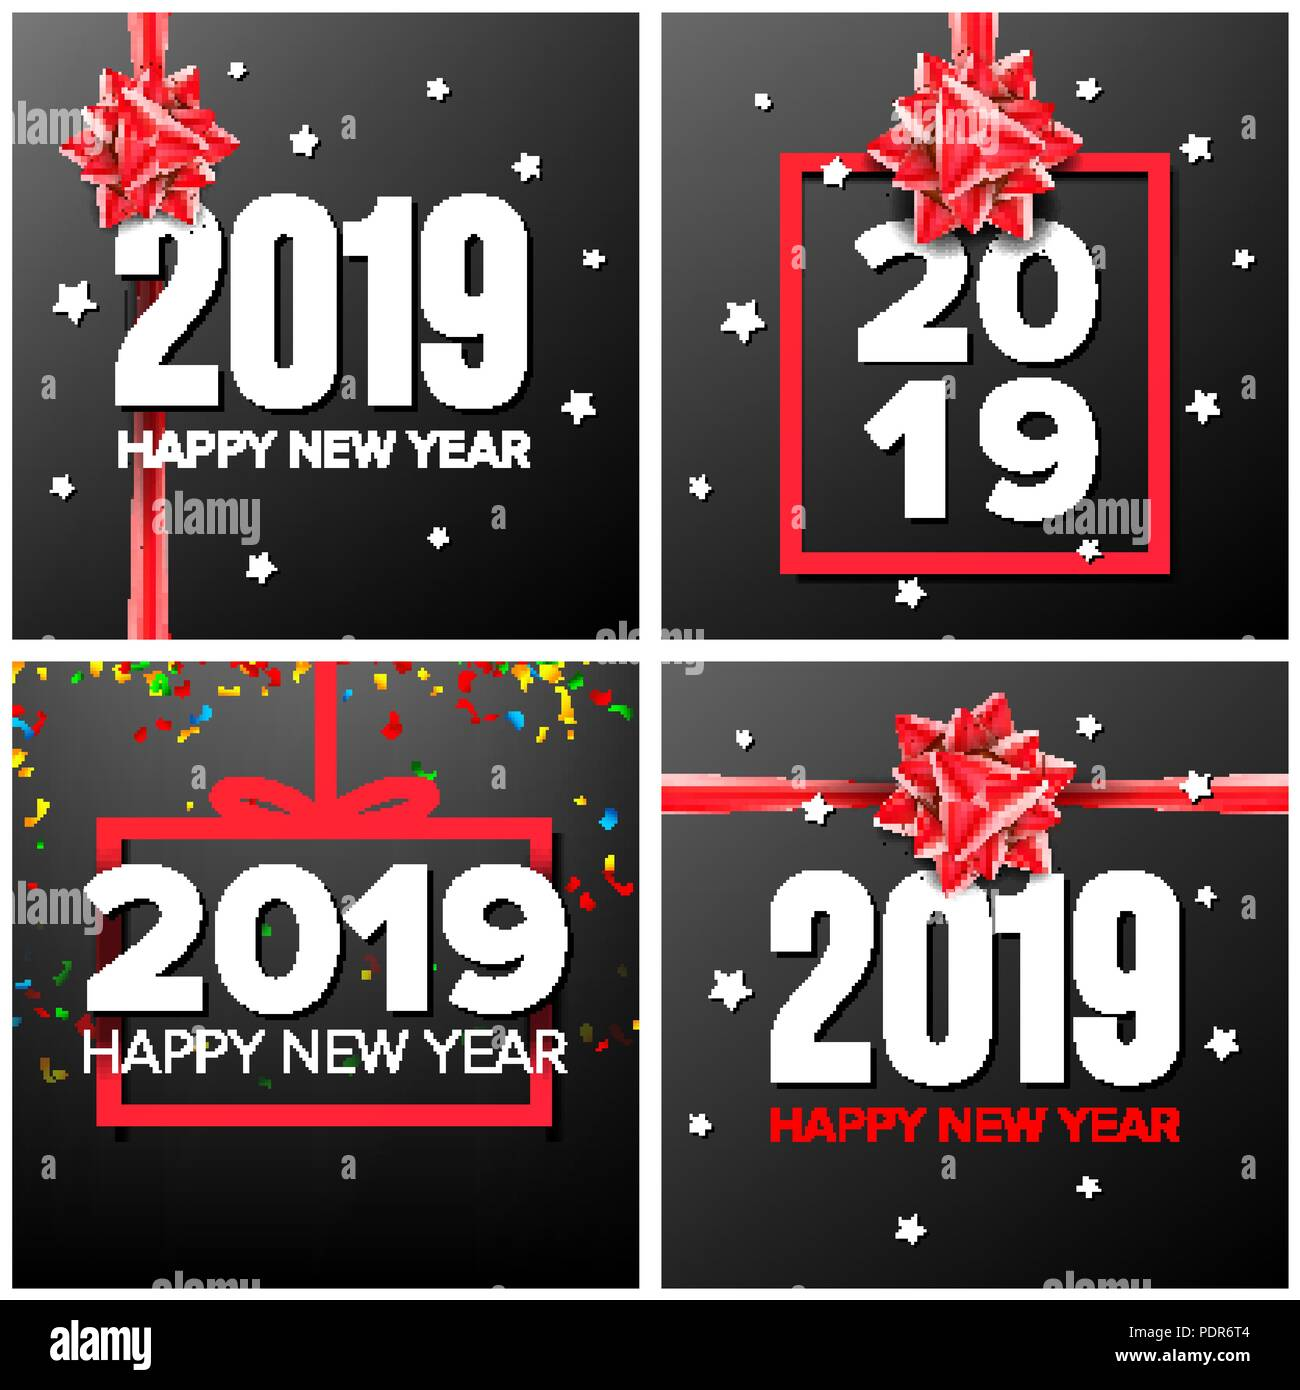 2019 happy new year background set vector numbers 2019 sign confetti red bow modern christmas brochure seasonal flyer holiday new year celebration